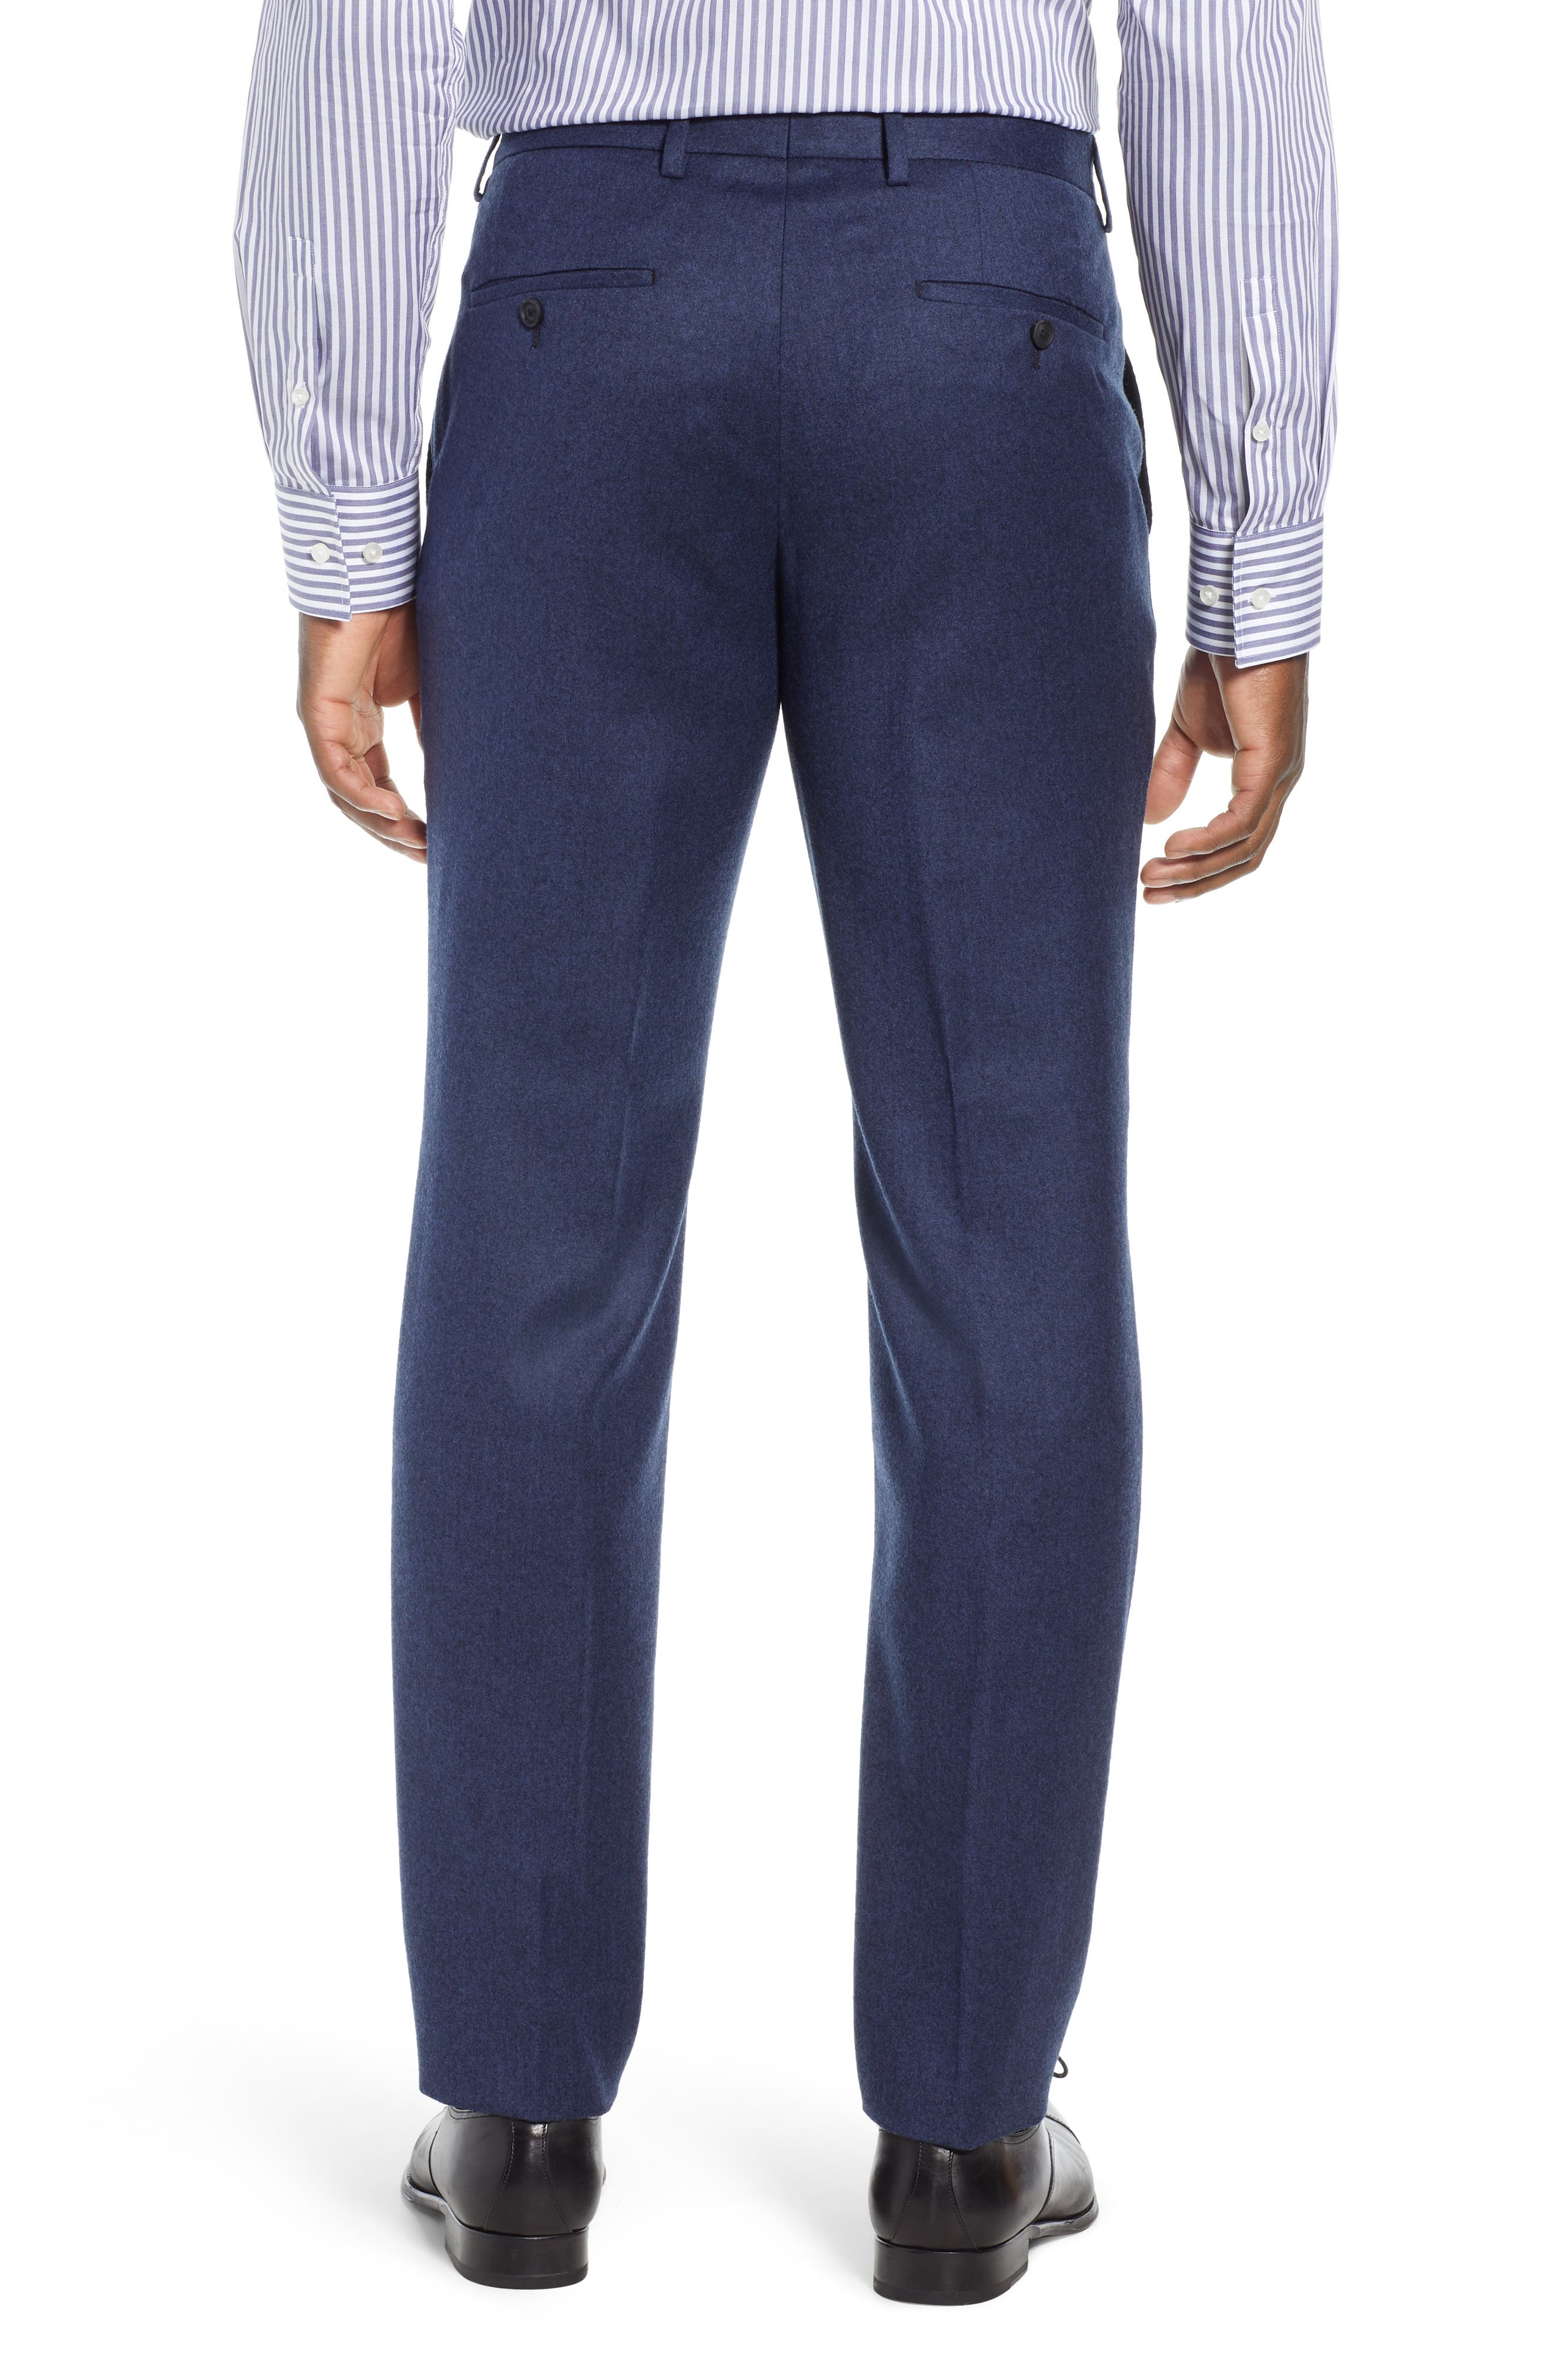 Gains Flat Front Solid Wool Trousers,                             Alternate thumbnail 2, color,                             DARK BLUE